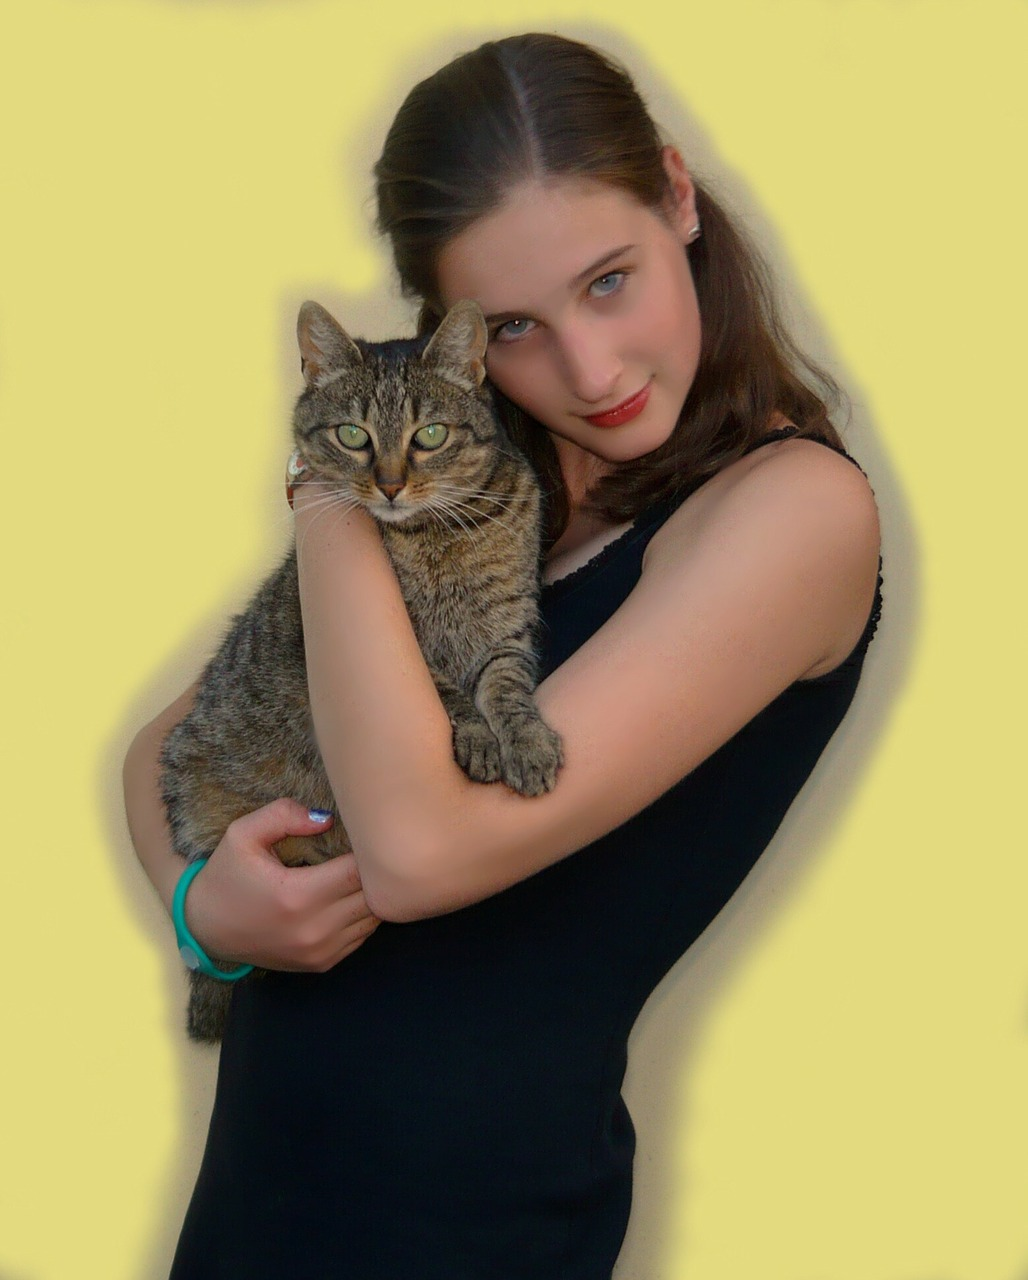 girl cat person free photo